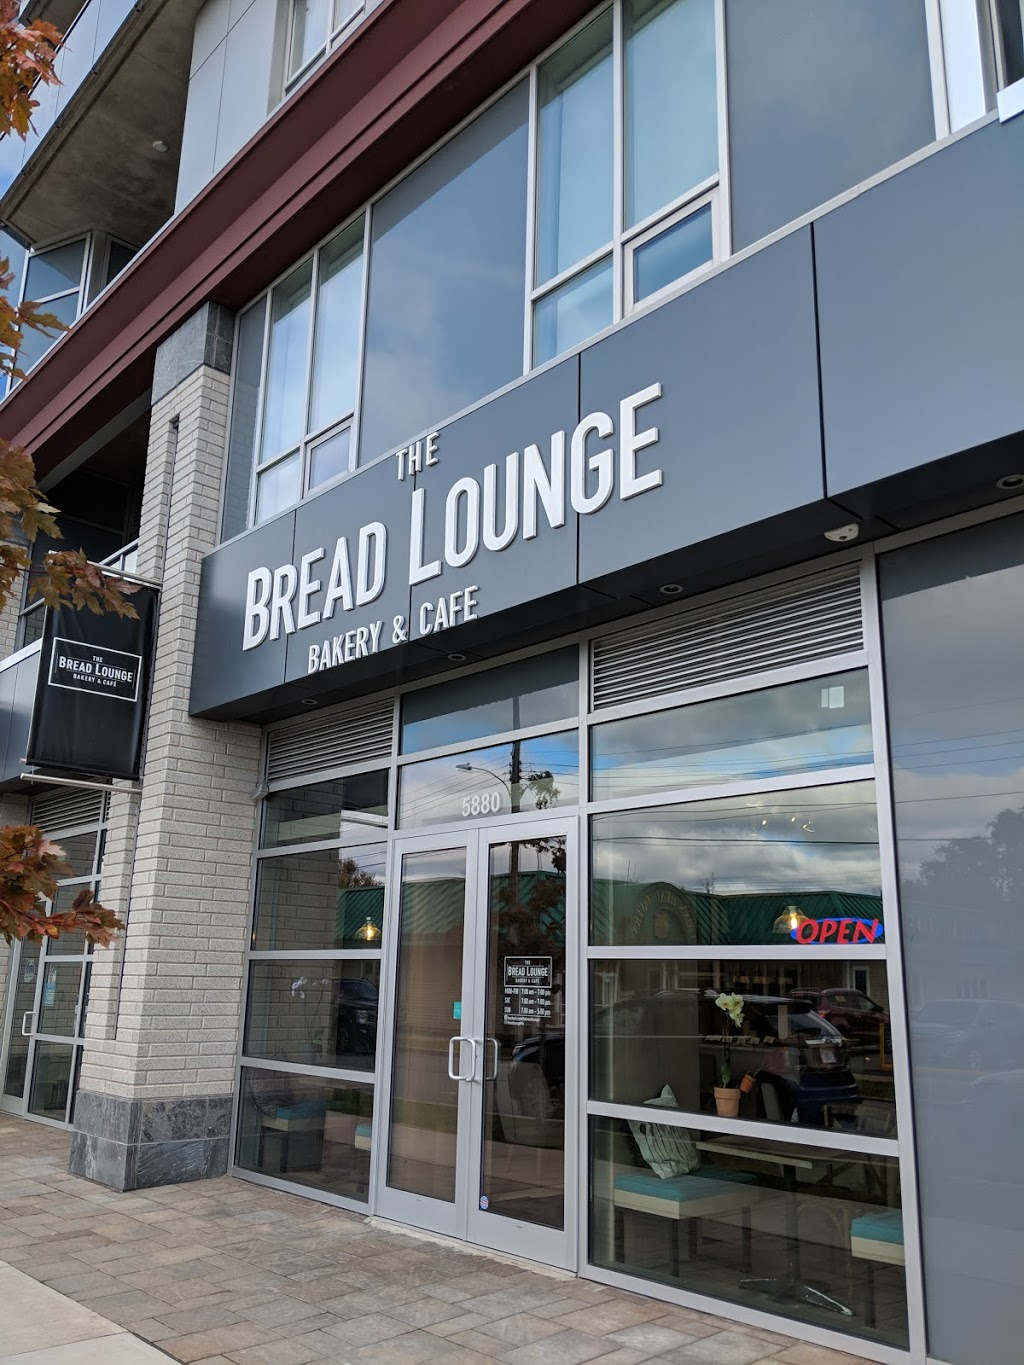 The Bread Lounge Bakery | bakery | 5880 Demone St, Halifax, NS B3K 1X9, Canada | 9024052374 OR +1 902-405-2374